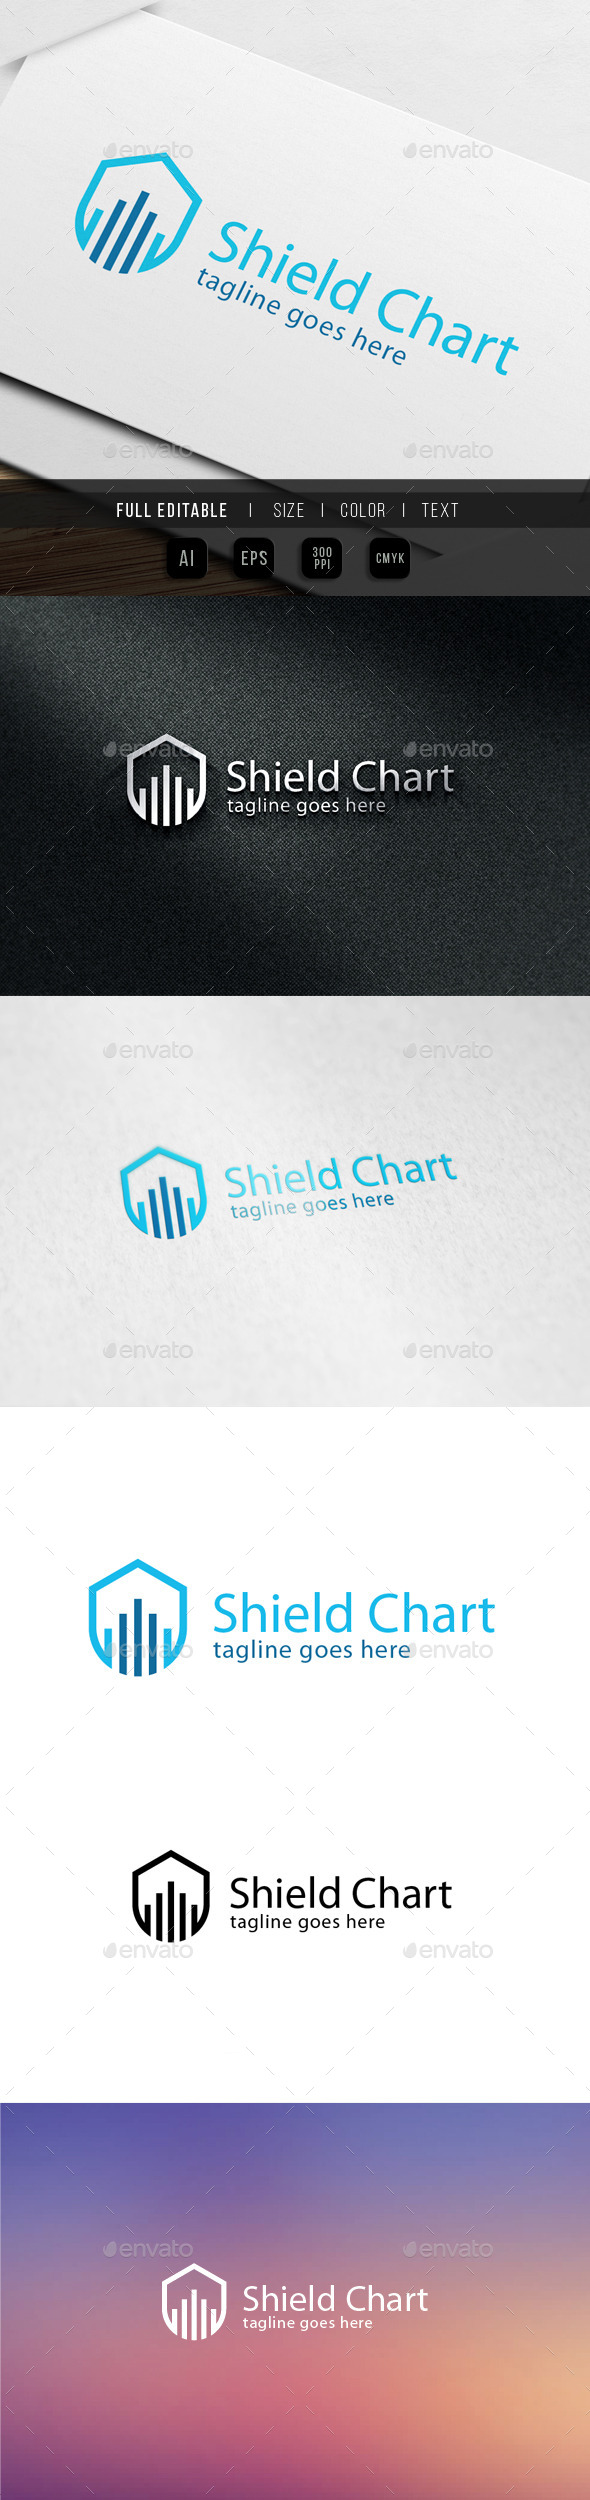 Shield Chart Logo - Objects Logo Templates